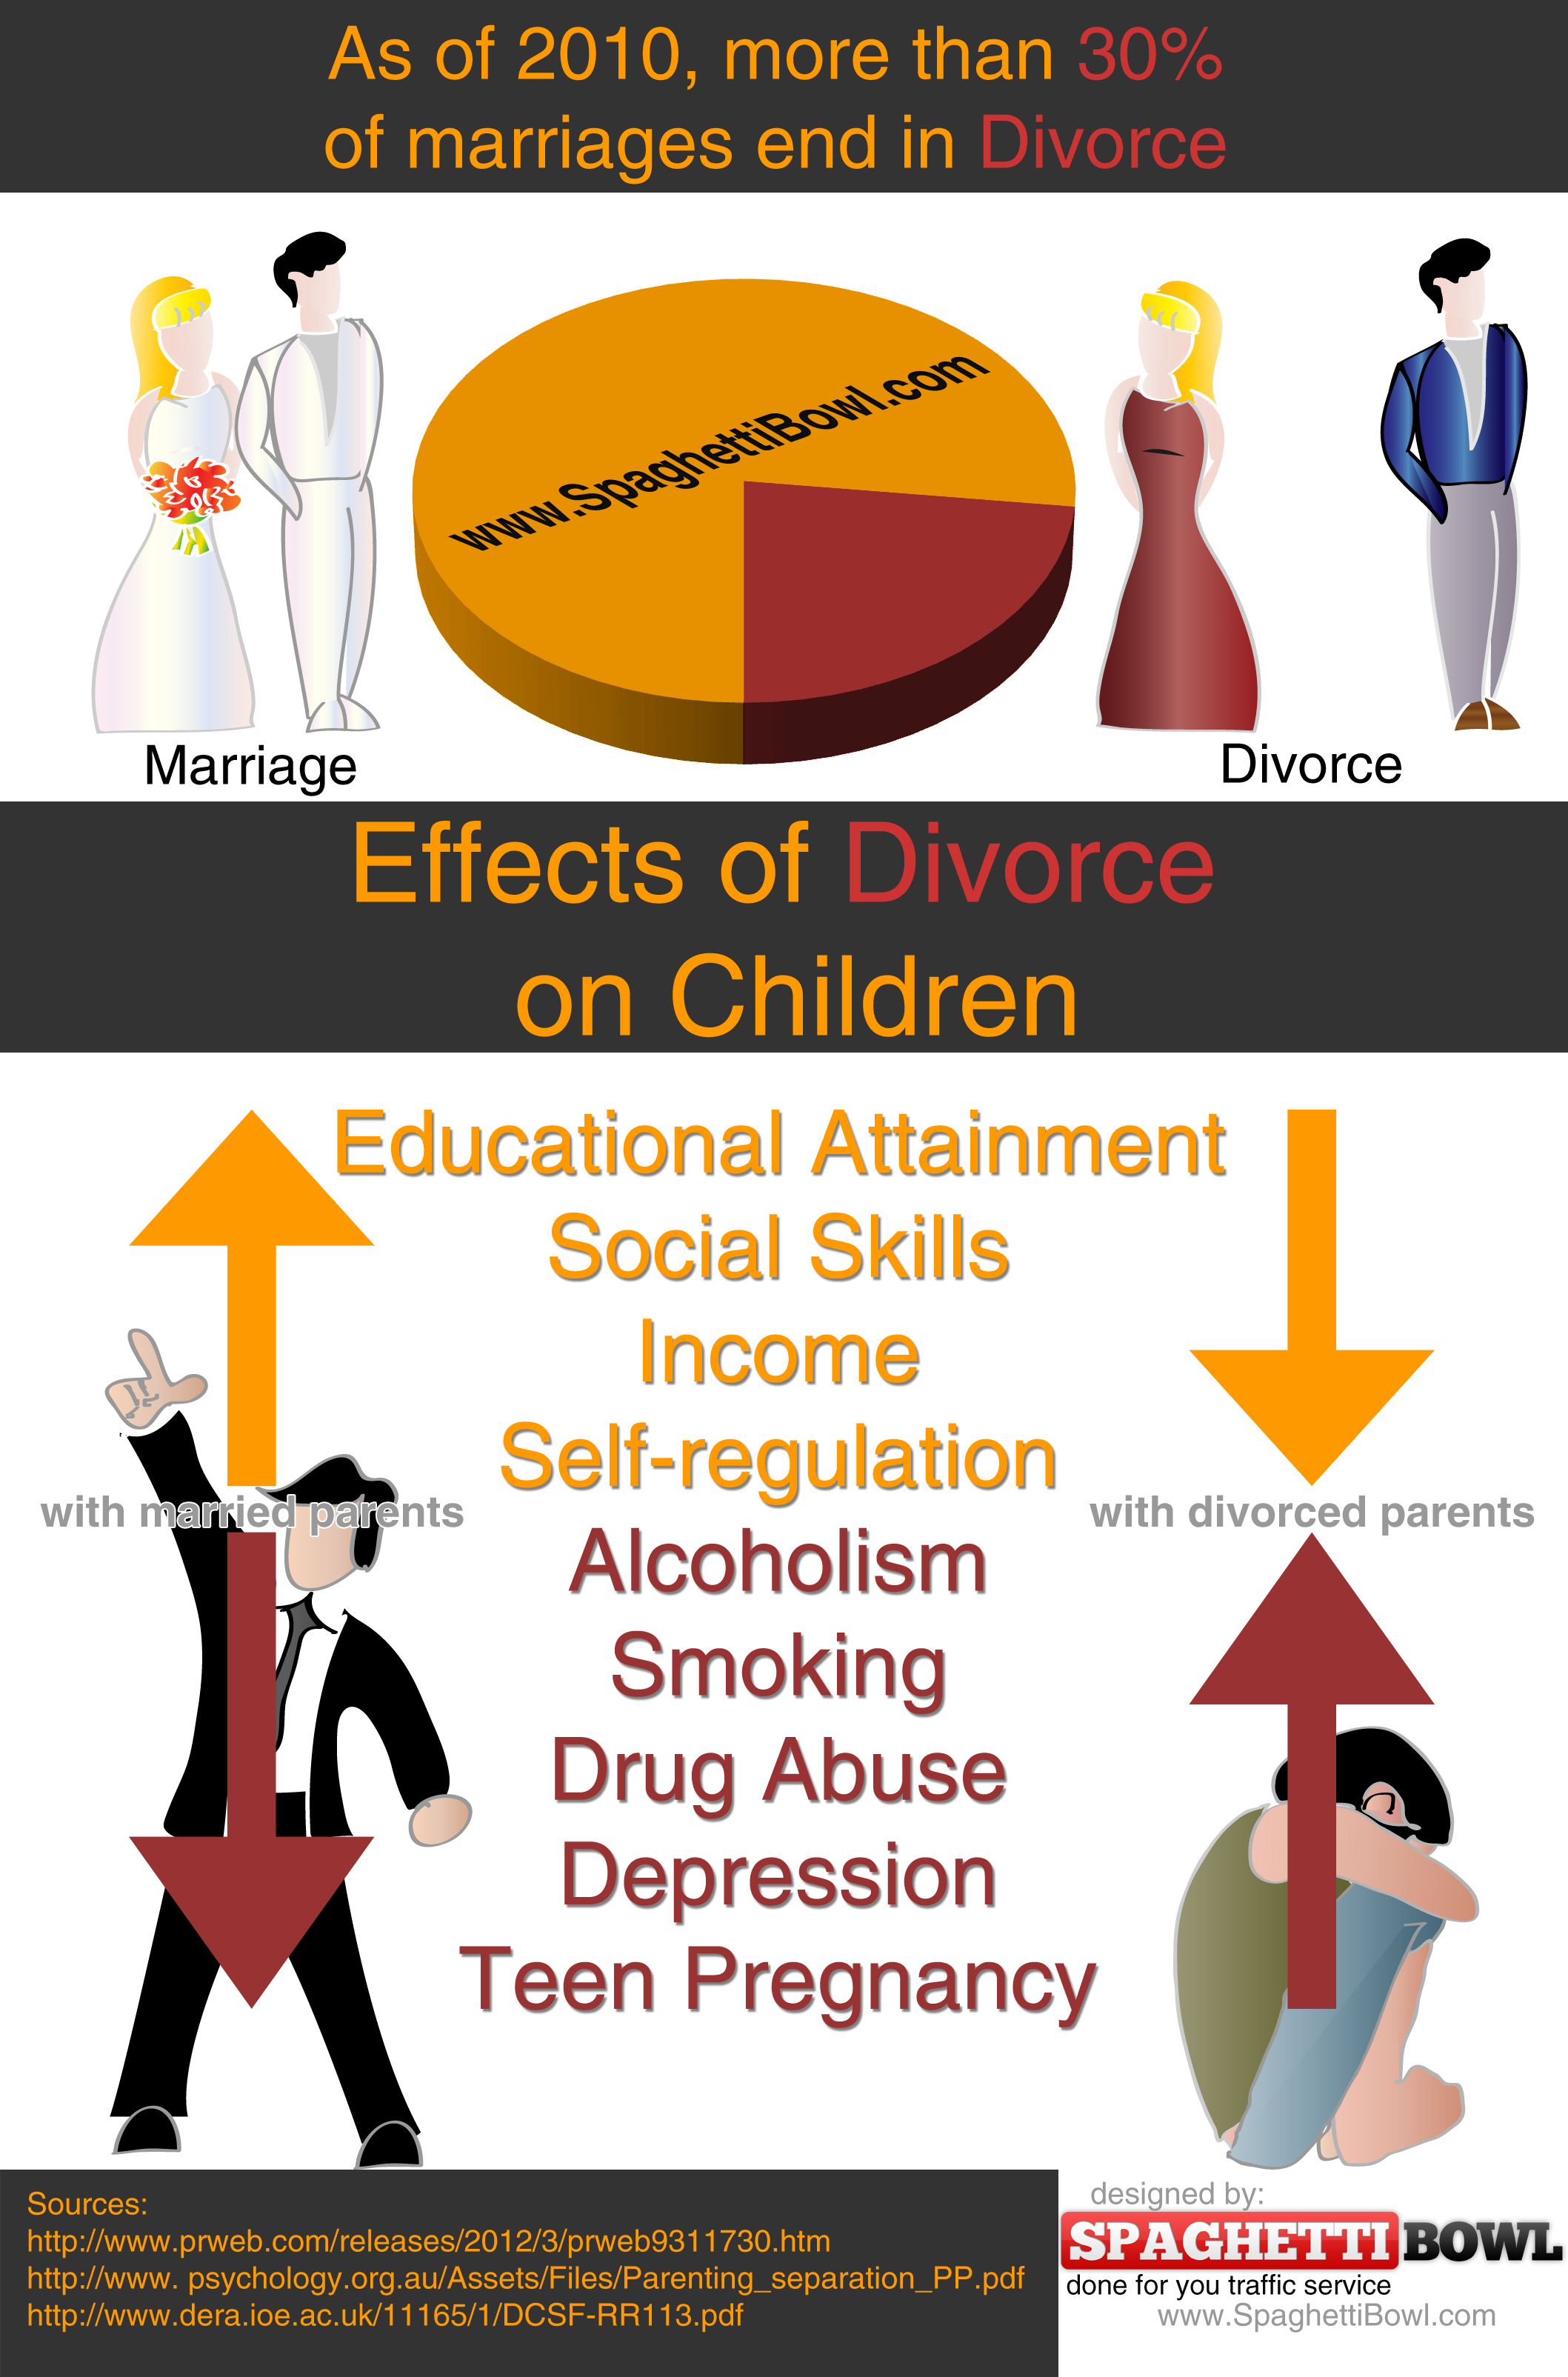 Effects-of-Divorce-Infographic-SpaghettiBowl